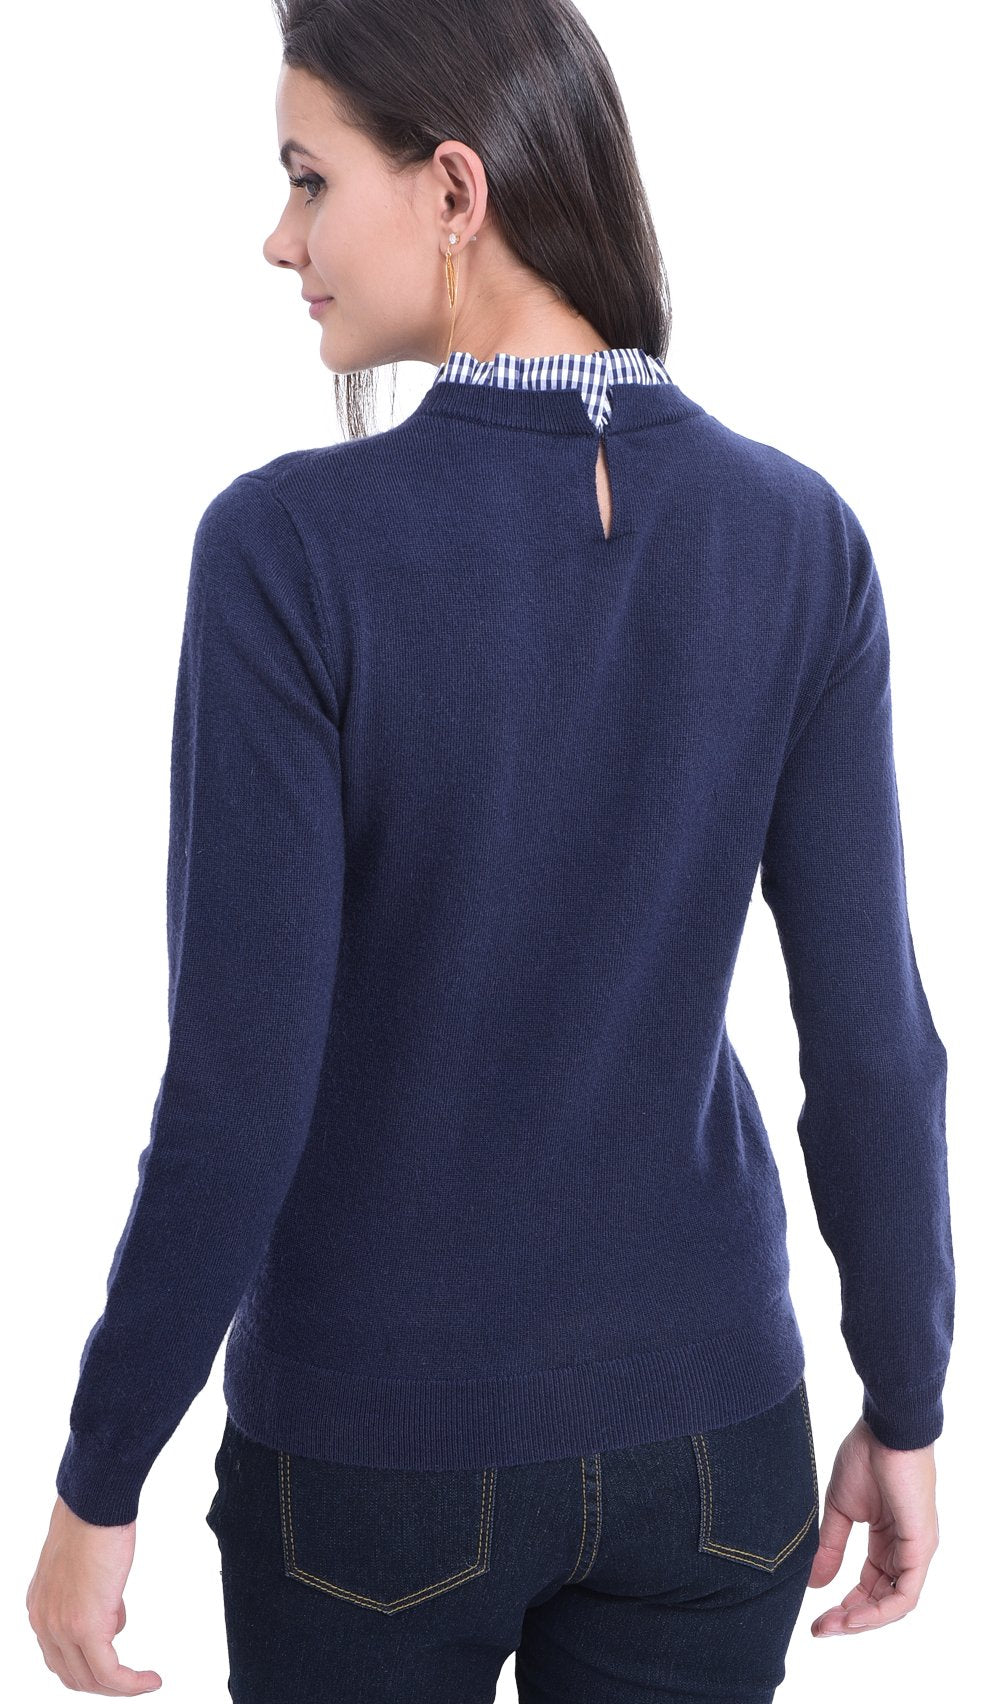 VICHY RUFFLED NECK SWEATER